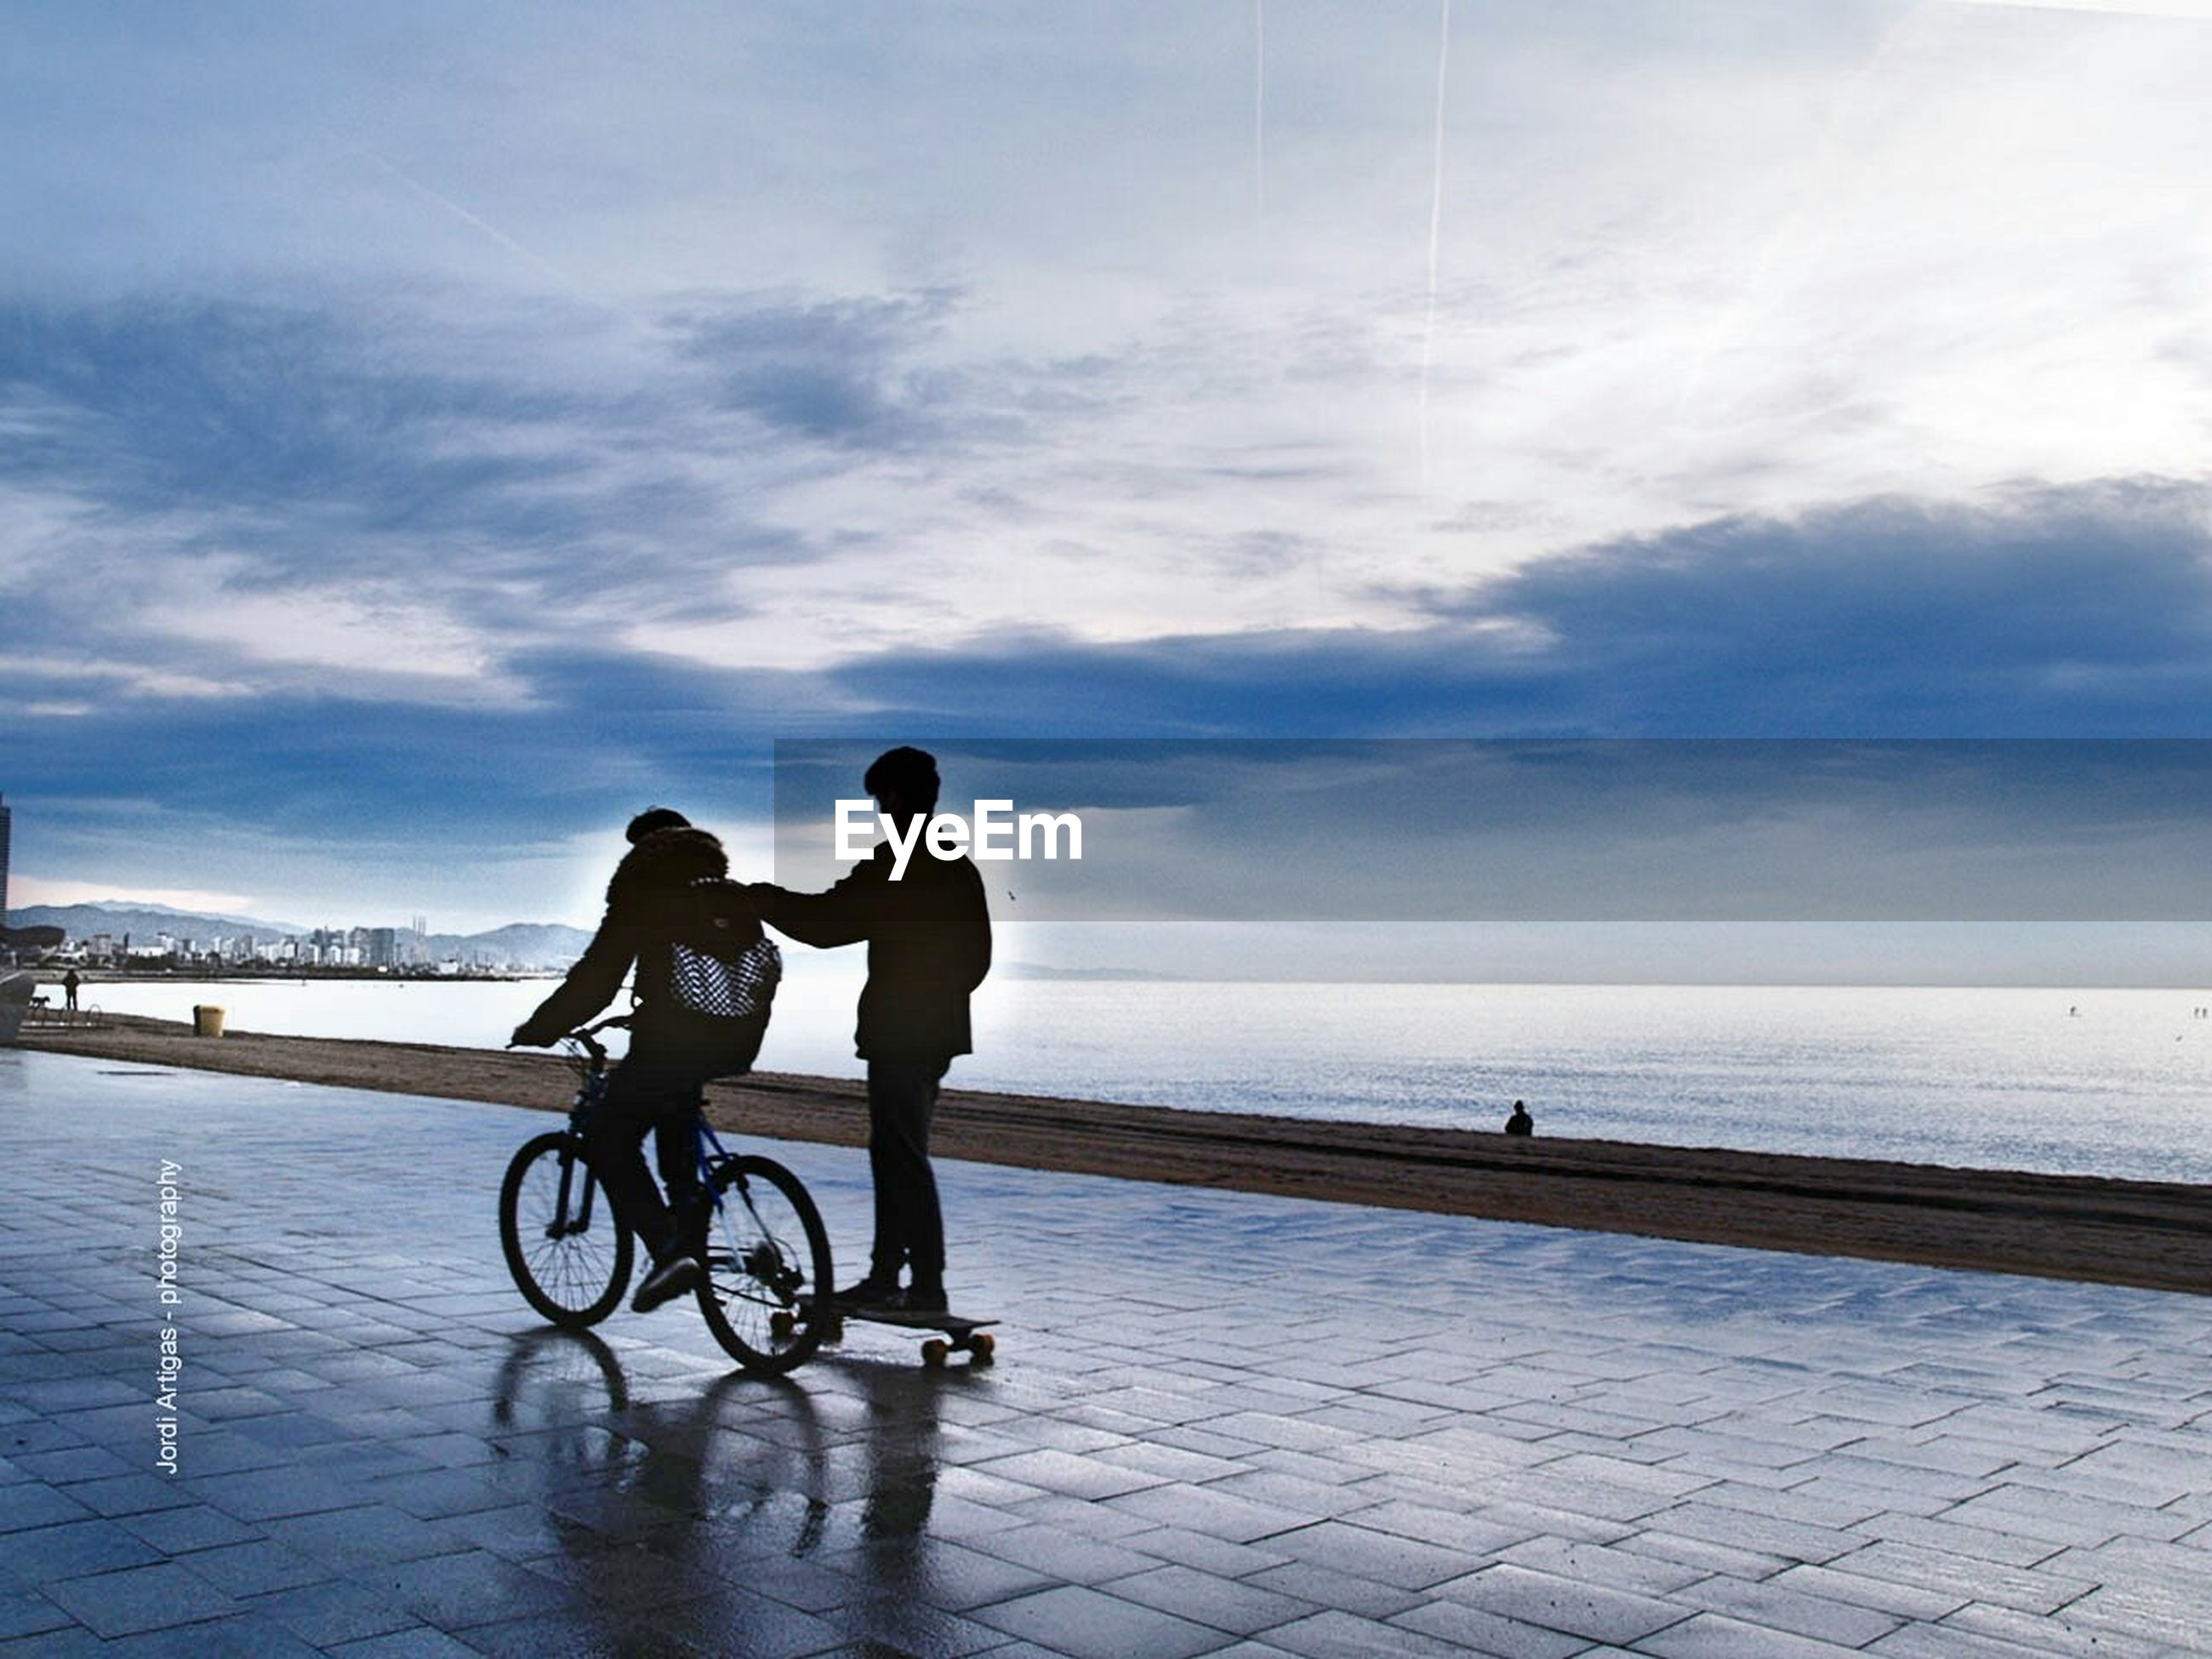 water, sea, sky, lifestyles, full length, men, leisure activity, horizon over water, cloud - sky, beach, bicycle, silhouette, transportation, togetherness, rear view, cloud, walking, shore